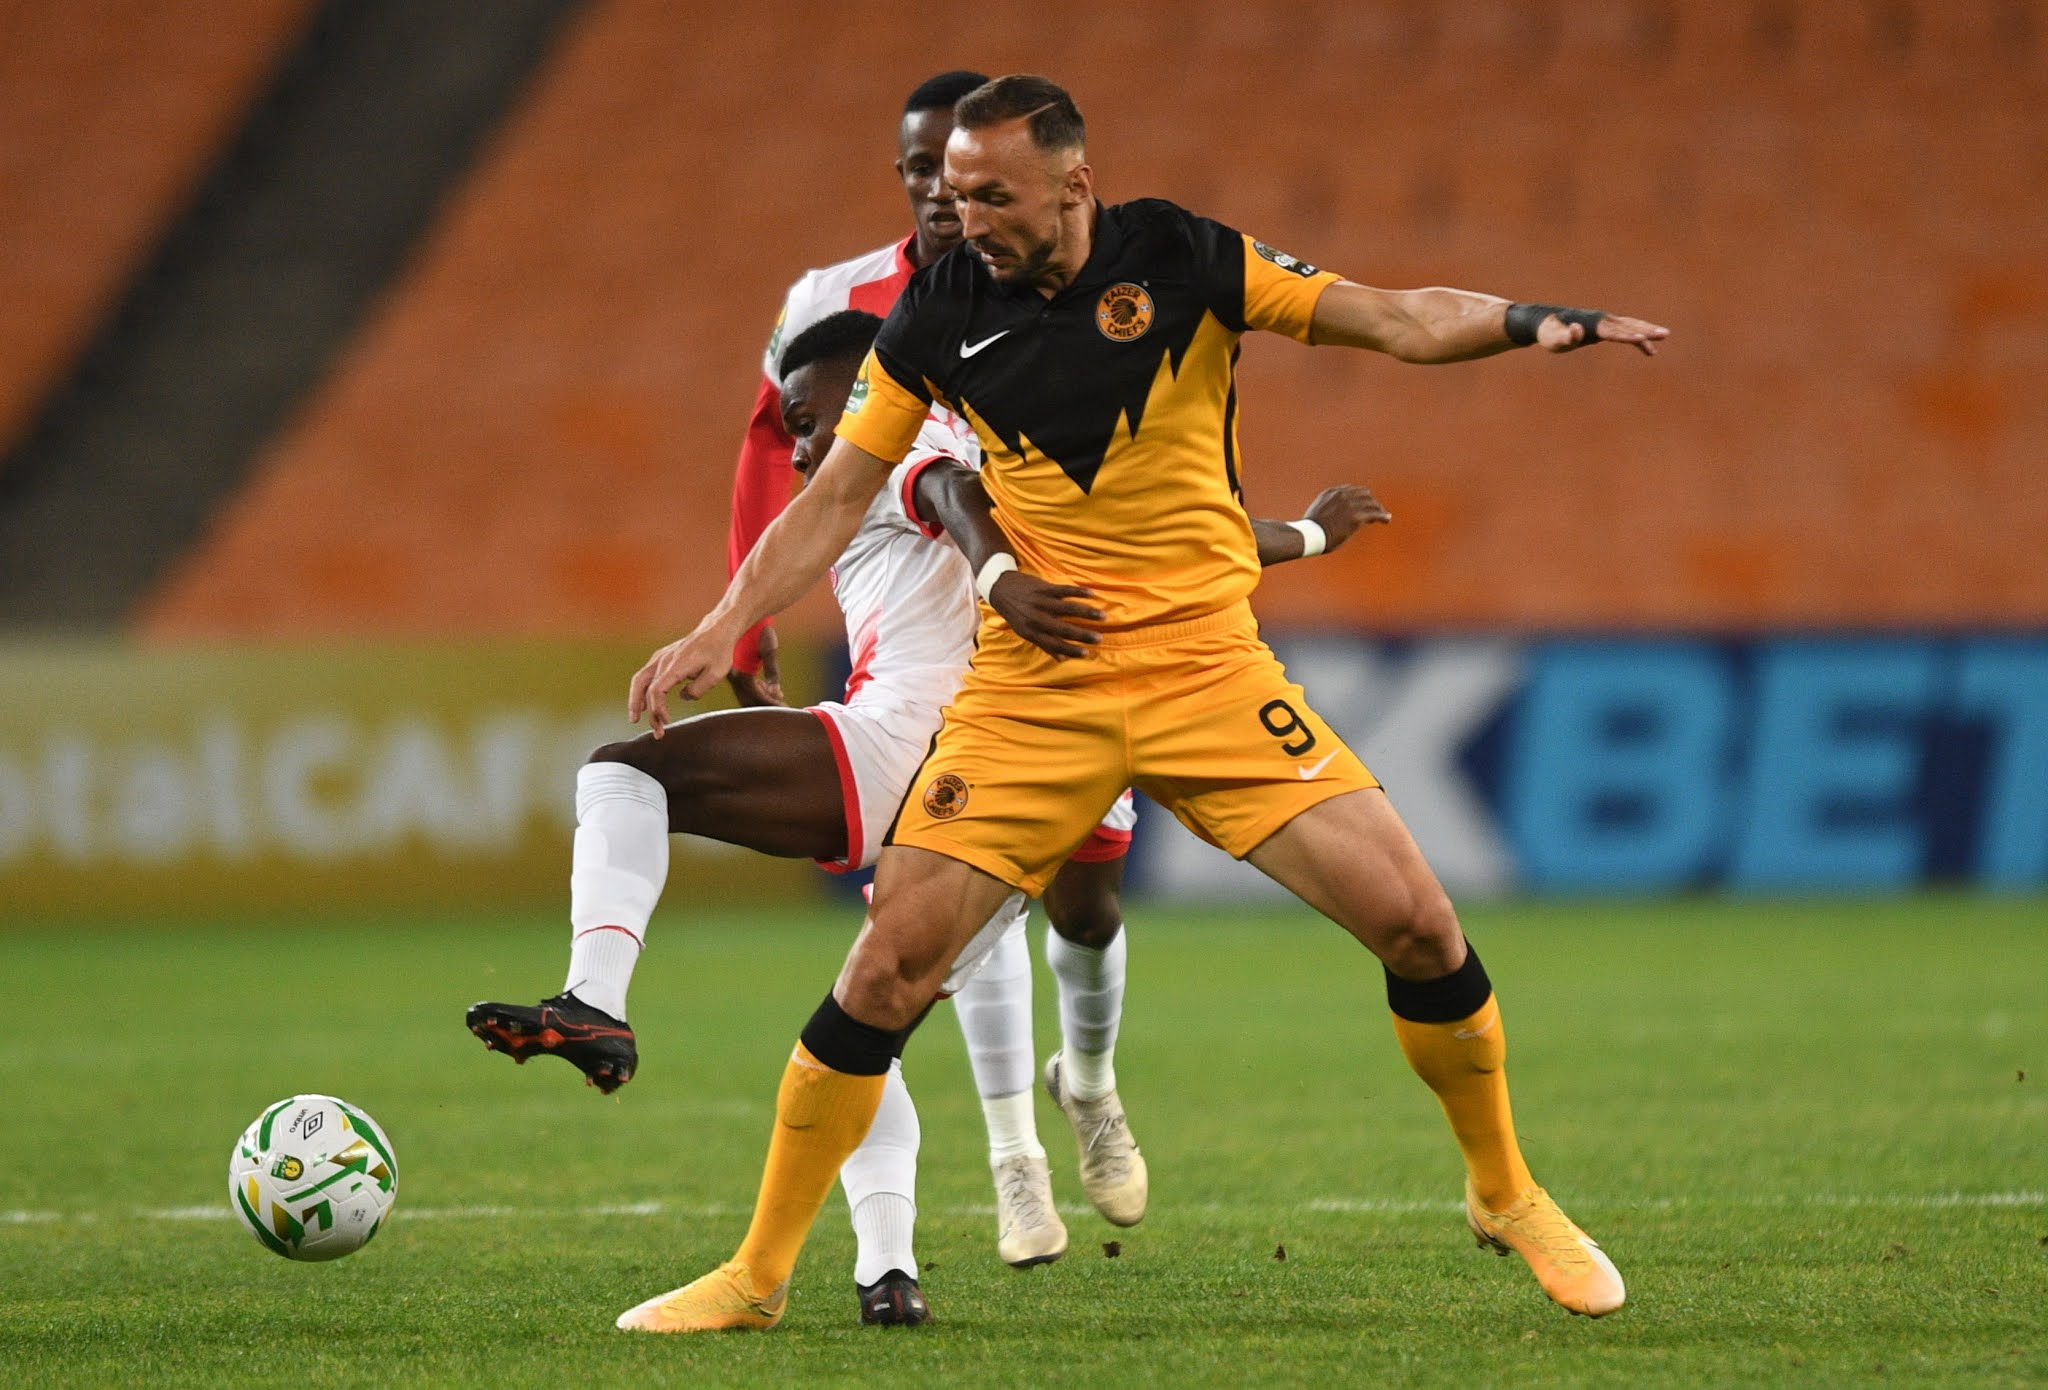 Amakhosi have one foot in the CAF Champions League final